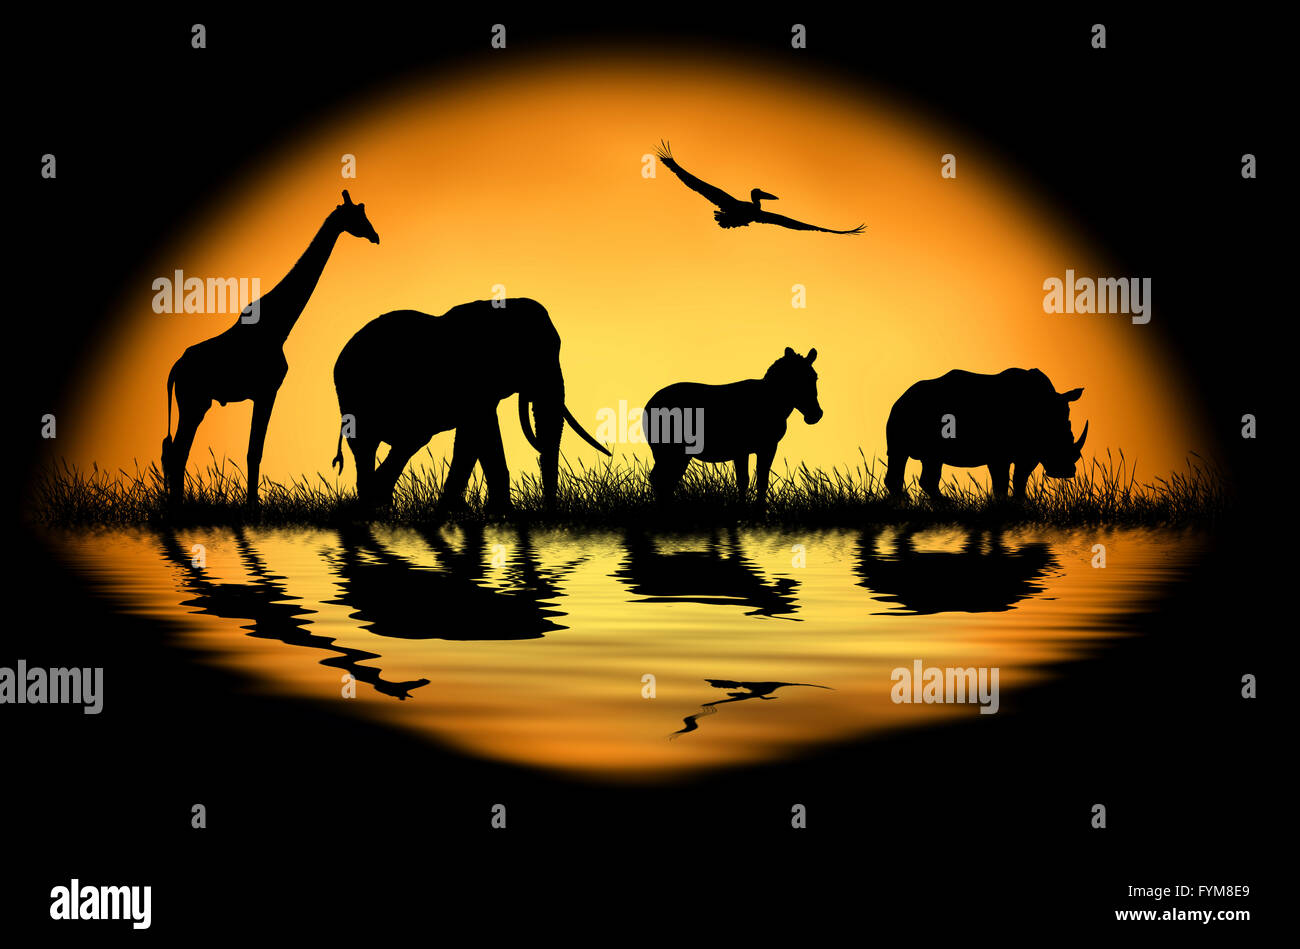 Silhouette african animals on the background of sunset. Large sun on a dark background - Stock Image